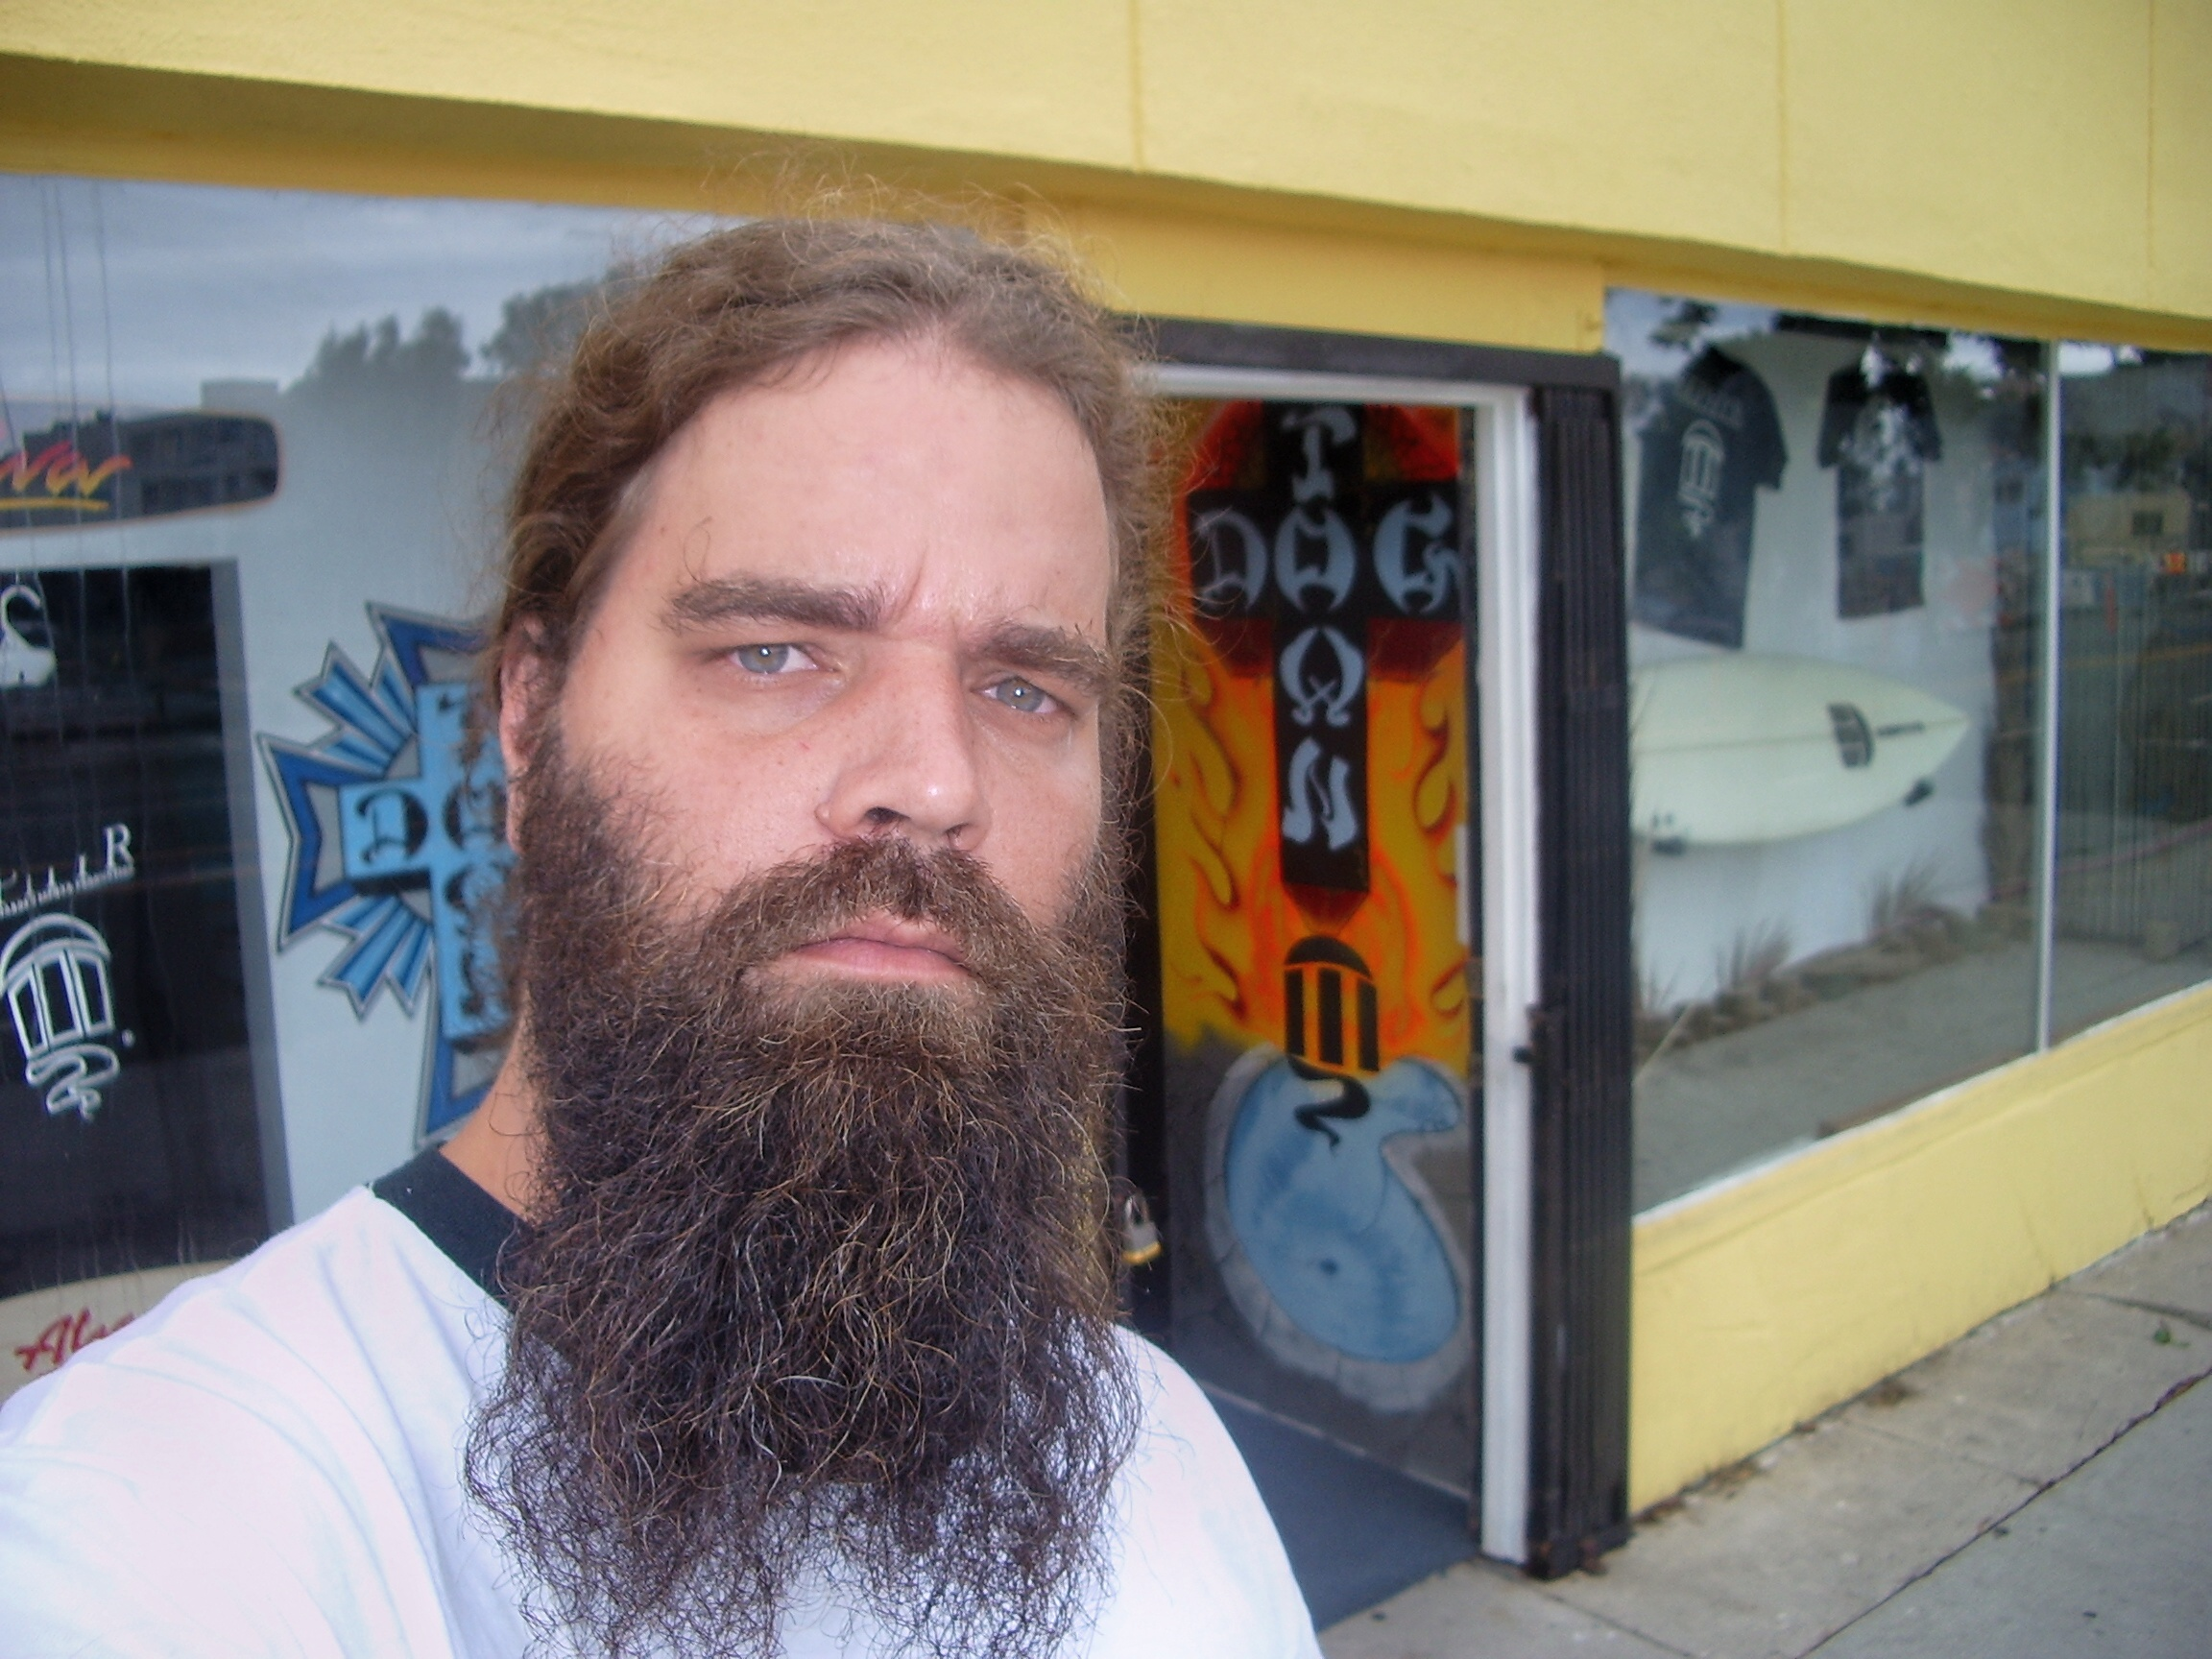 Jack on a pilgrimage to the Dogtown Shop in Los Angeles.